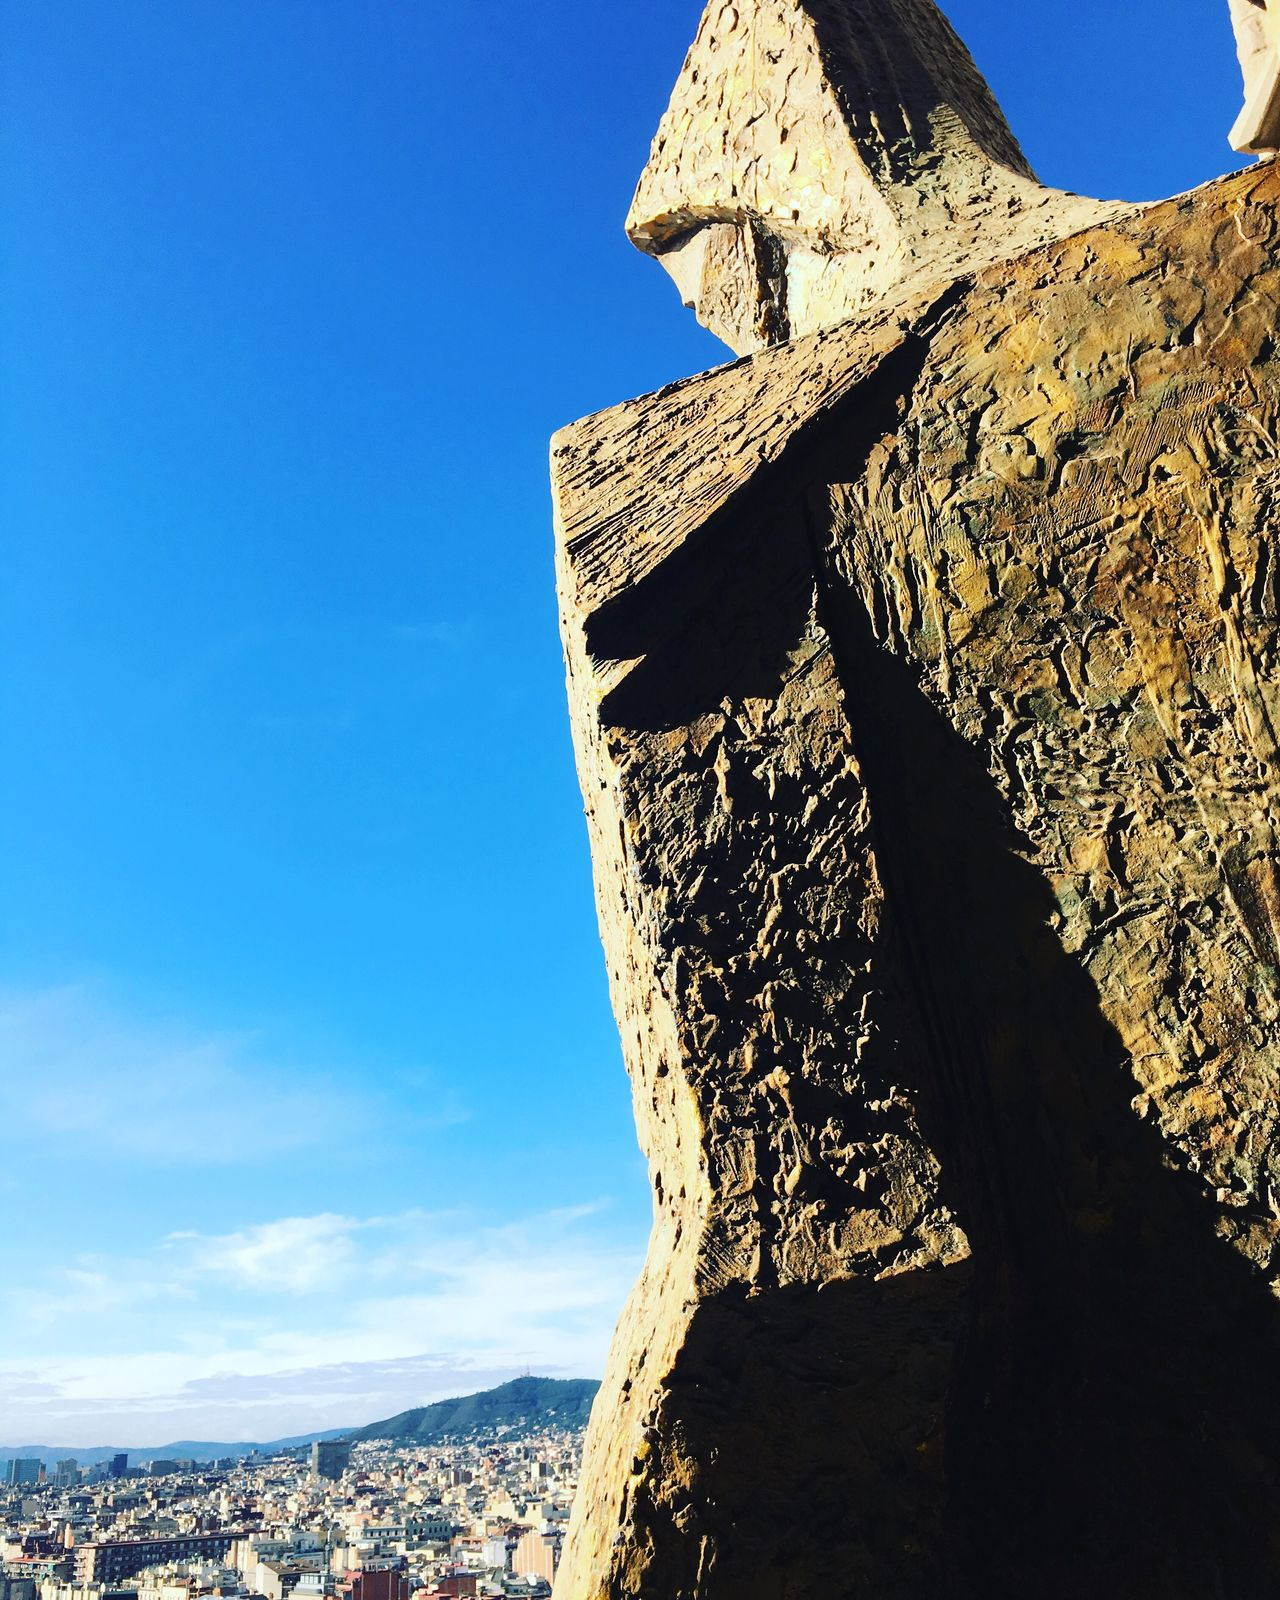 Blue Sky Low Angle View Clear Sky Sunlight Day Nature Outdoors No People Tranquility Beauty In Nature Scenics Mountain Sagrada Familia Sagradafamilia La Sagrada Familia Romantic View Contemplating Figure Contemplative Figure